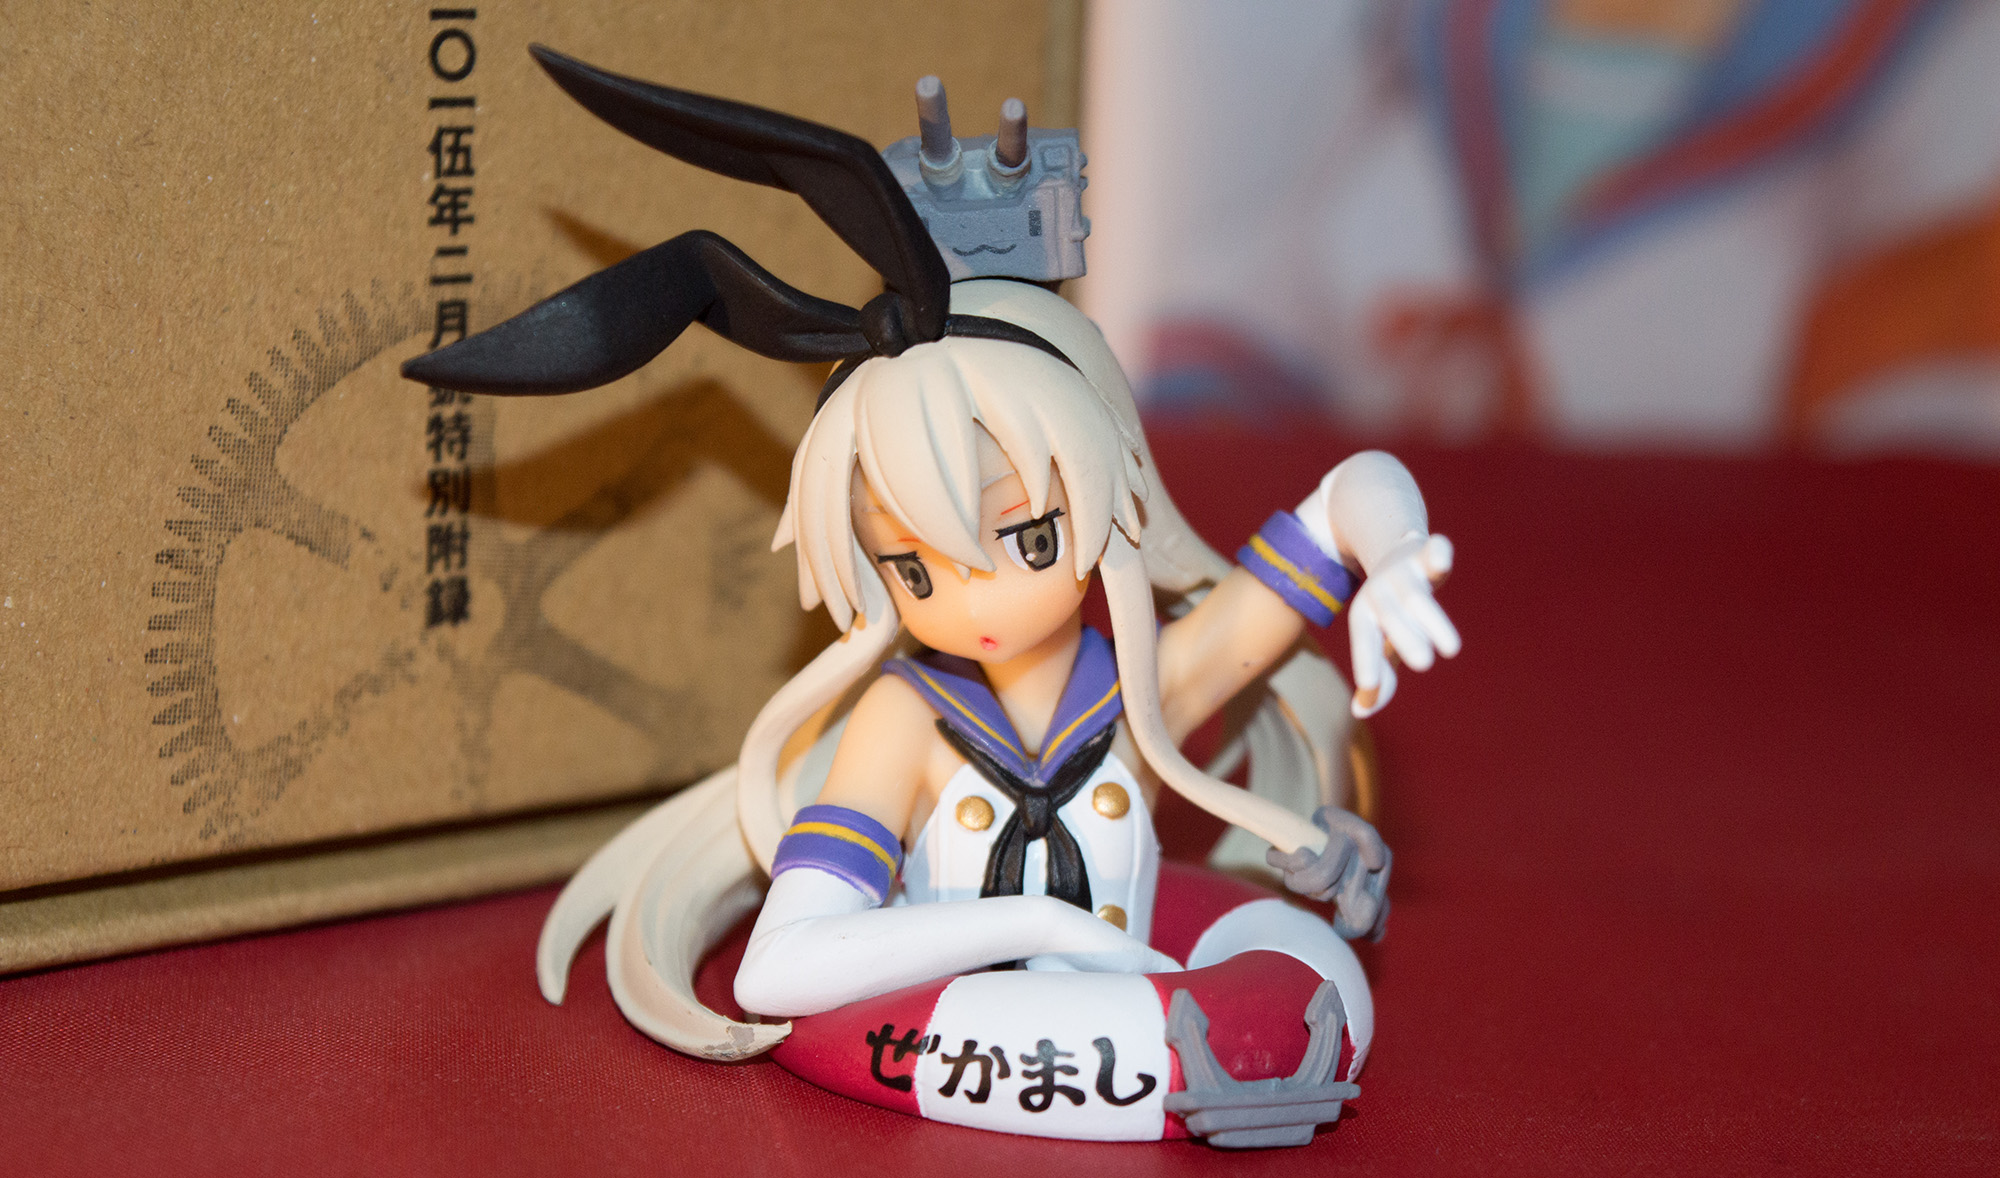 Haruhichan.com NyanType Magazine February 2015 anime Kantai Collection Shimakaze figure 3